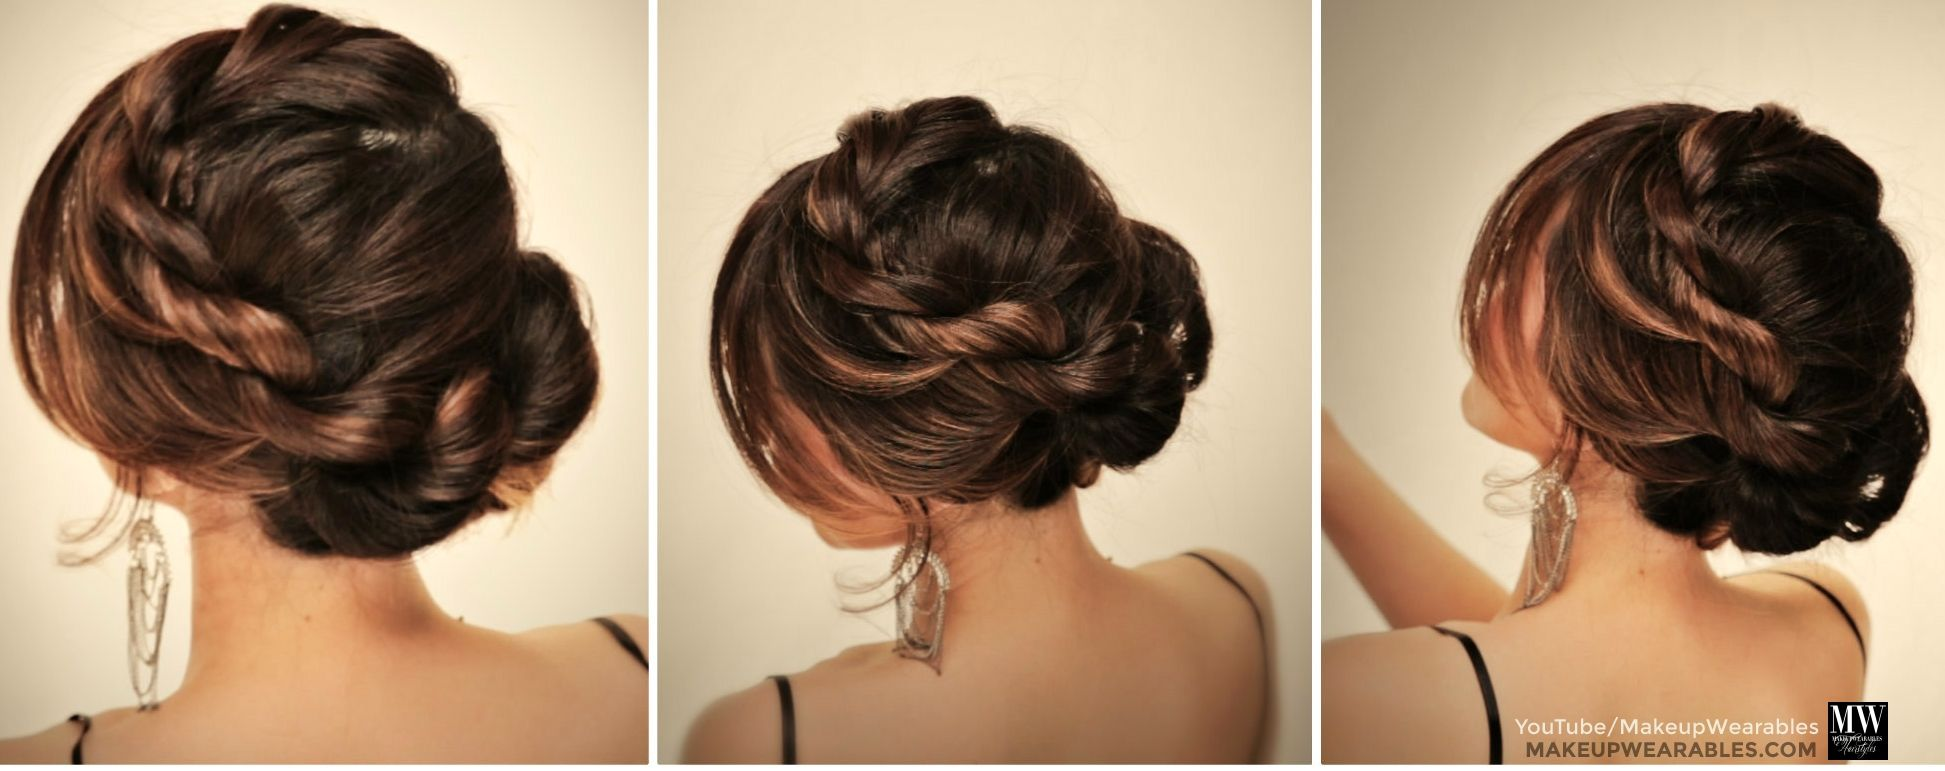 How to amazingly cute easy hairstyles with a simple twist